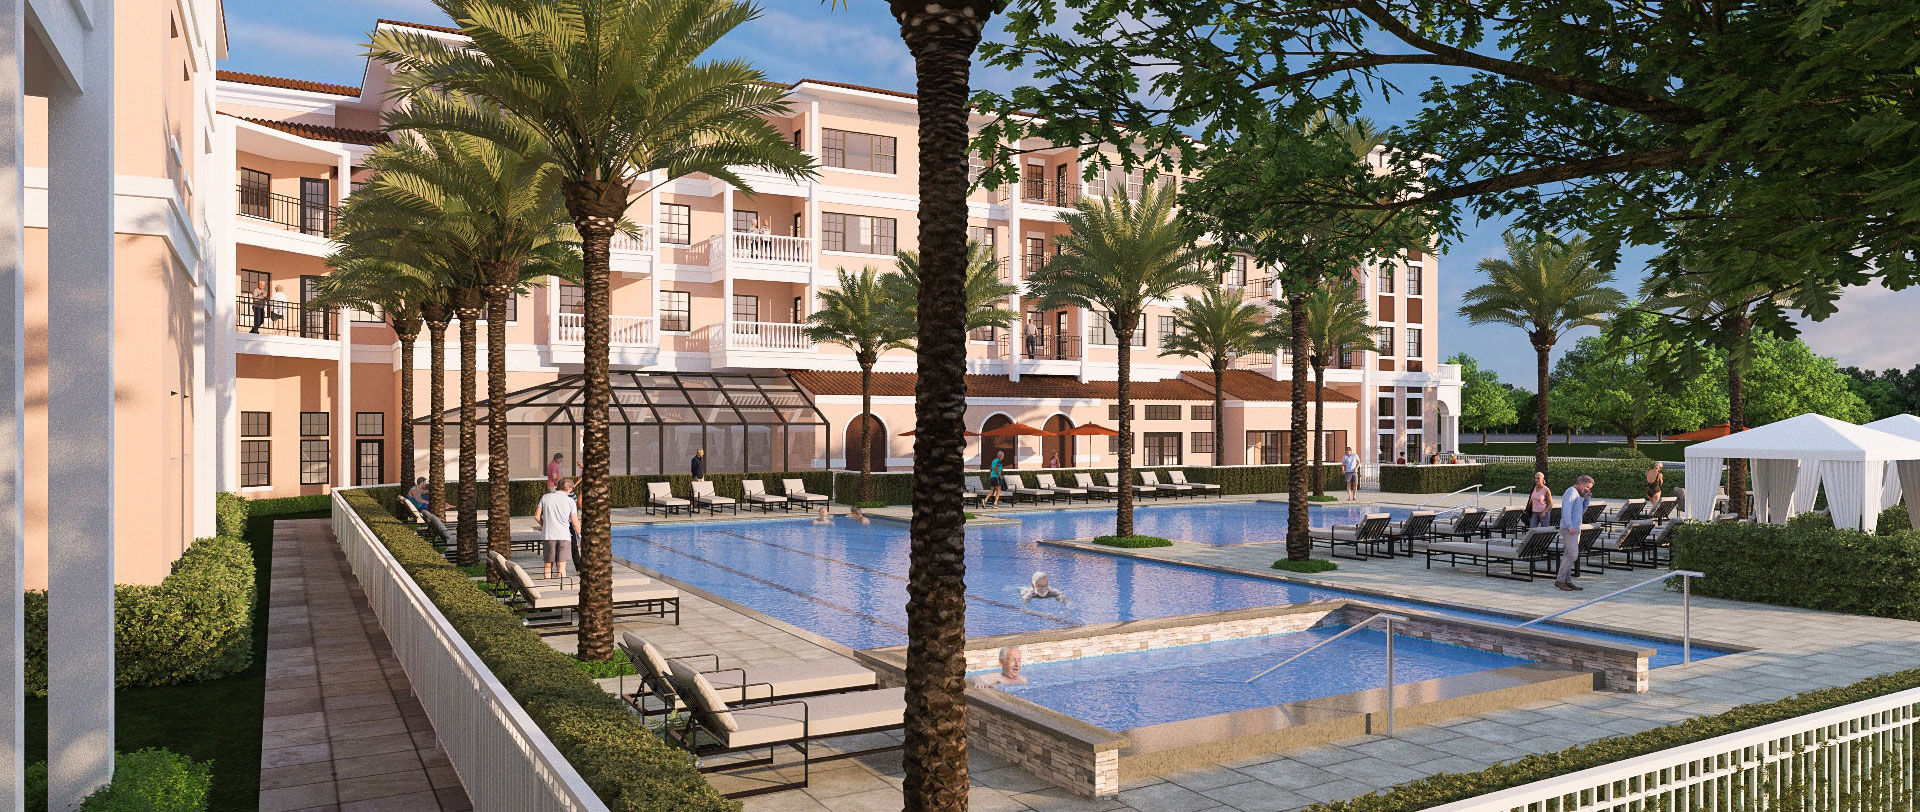 Become a Priority Member Sinai Residences of Boca Raton